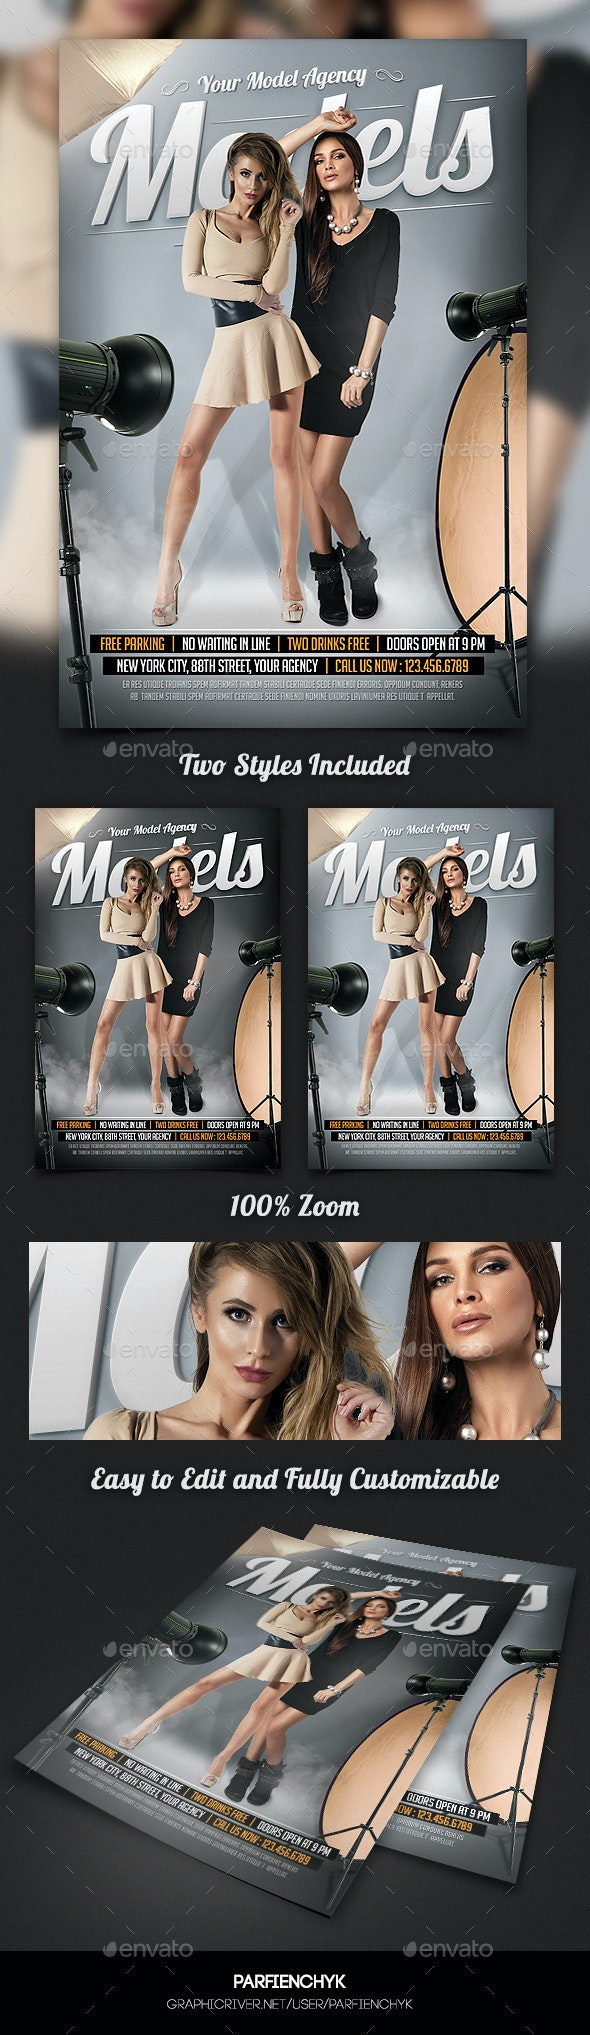 Professional Model Agency Flyer Template - Clubs & Parties Events